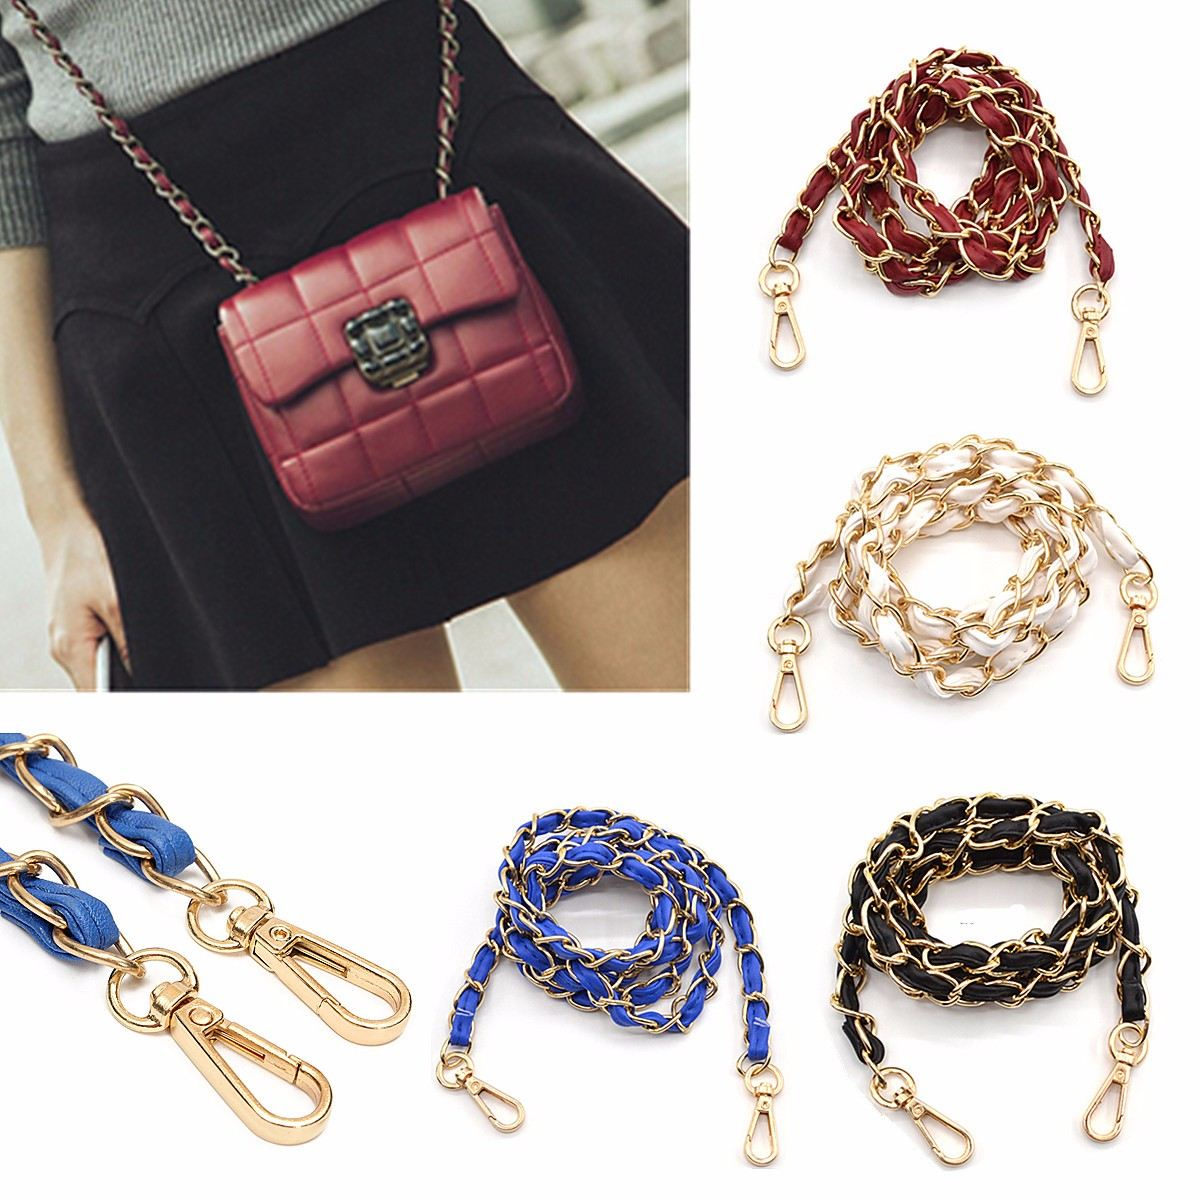 AEQUEEN 130cm Bag Strap Bag Accessories Detachable Replacement Shoulder Belt Leather Bag Strap Handbag Metal Long Chain Bands цены онлайн